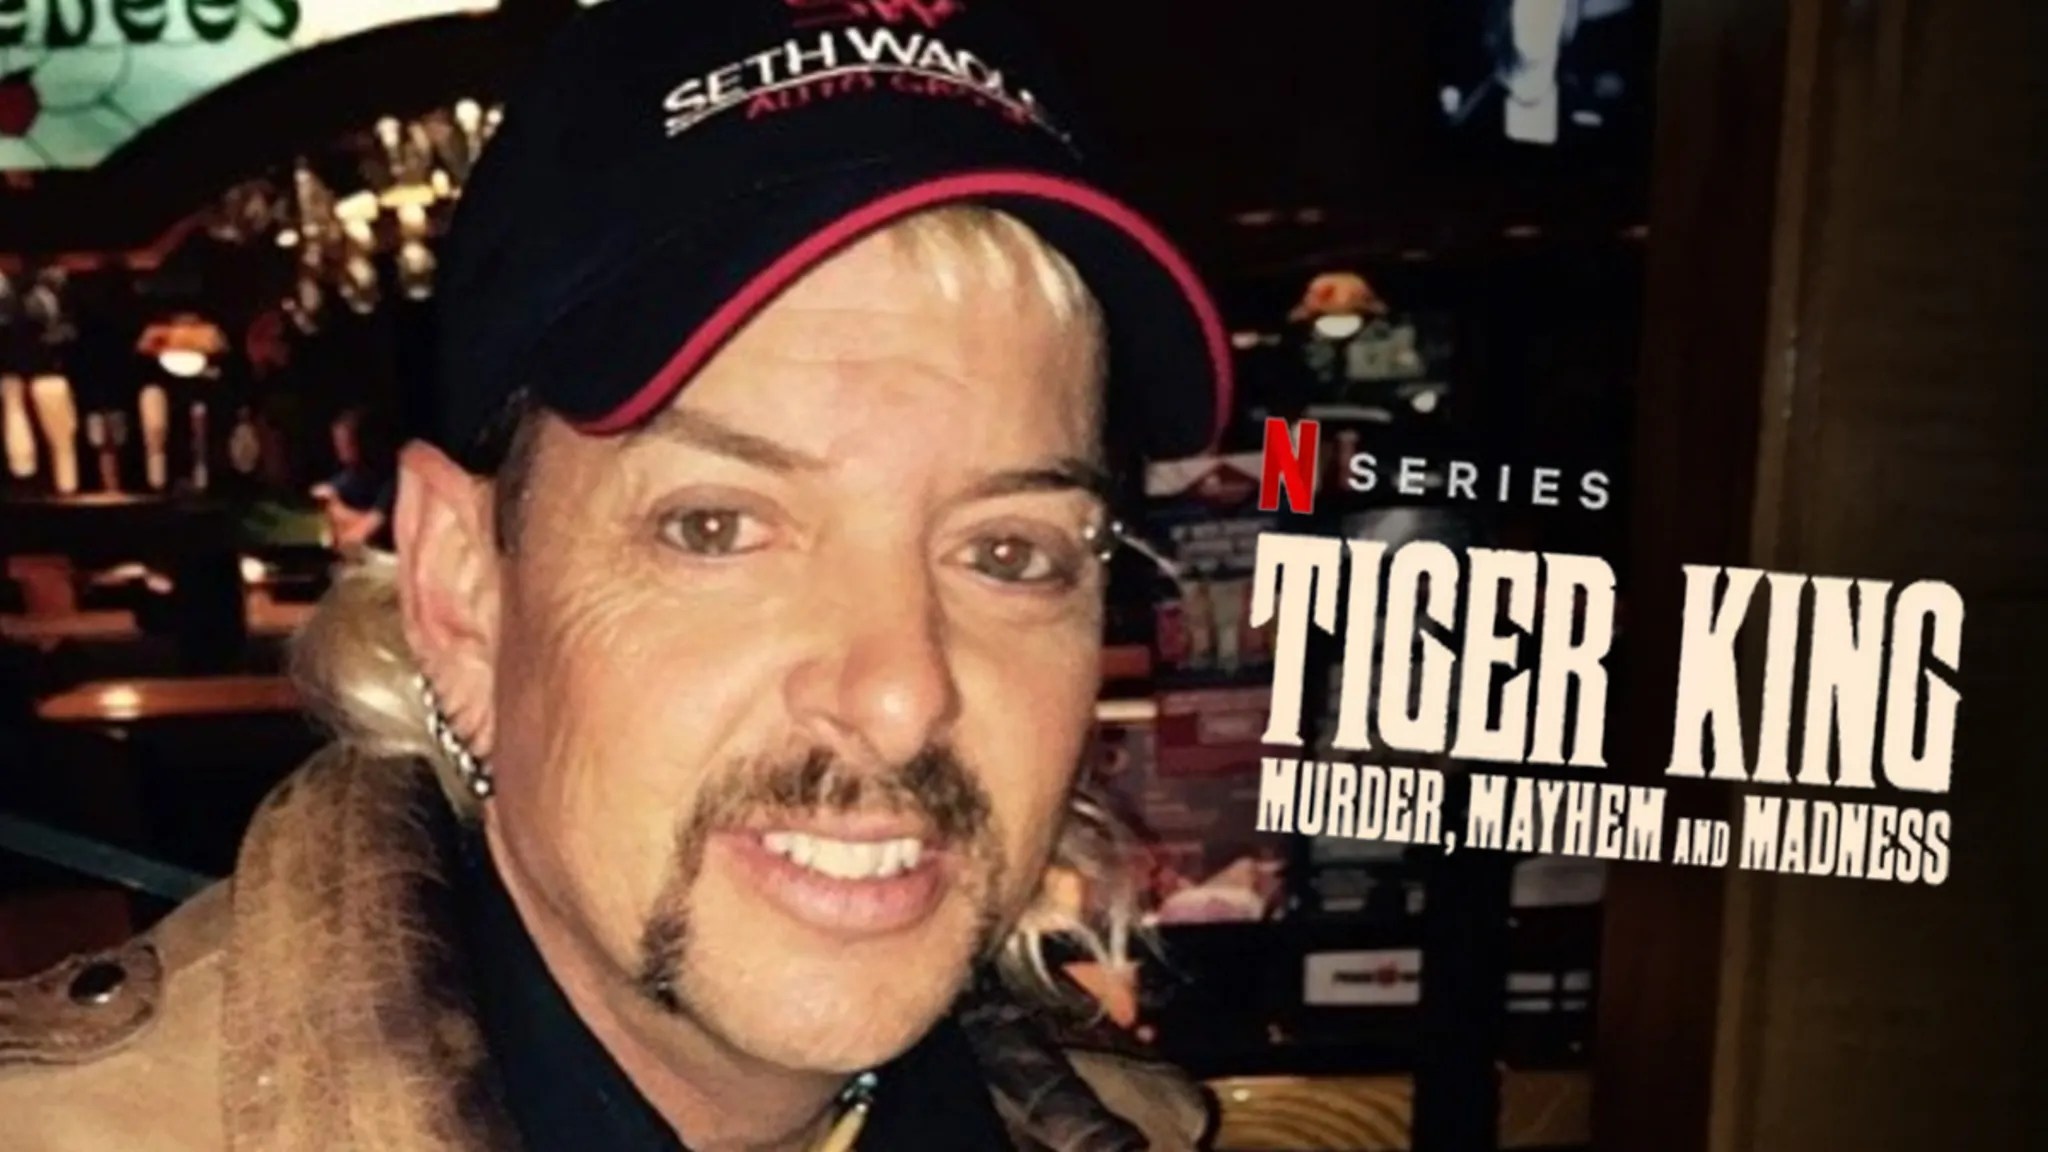 Joe Exotic Reveling in 'Tiger King' Fame, But Currently in Quarantine